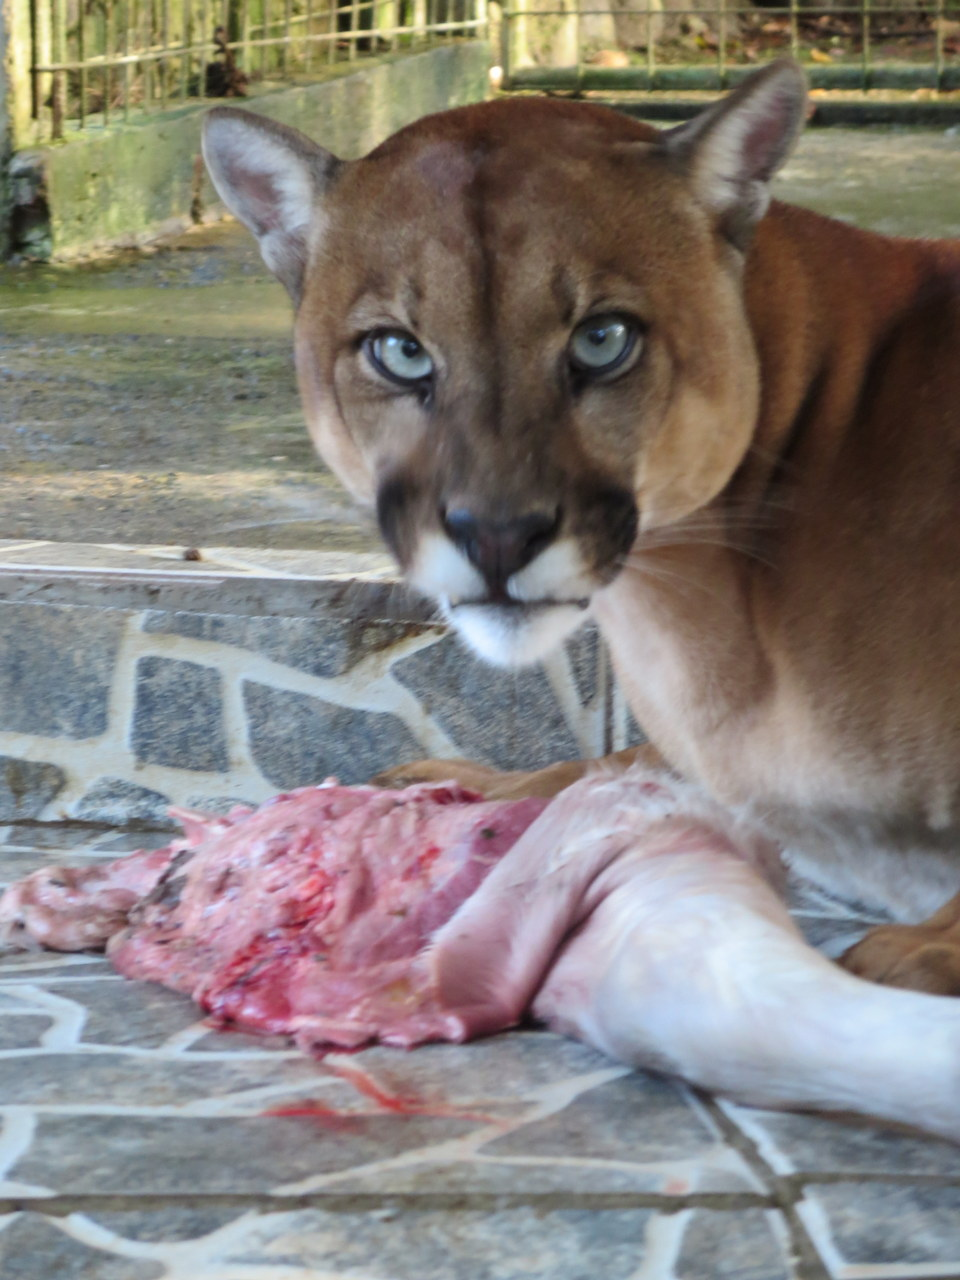 Lunchtime for Pumas